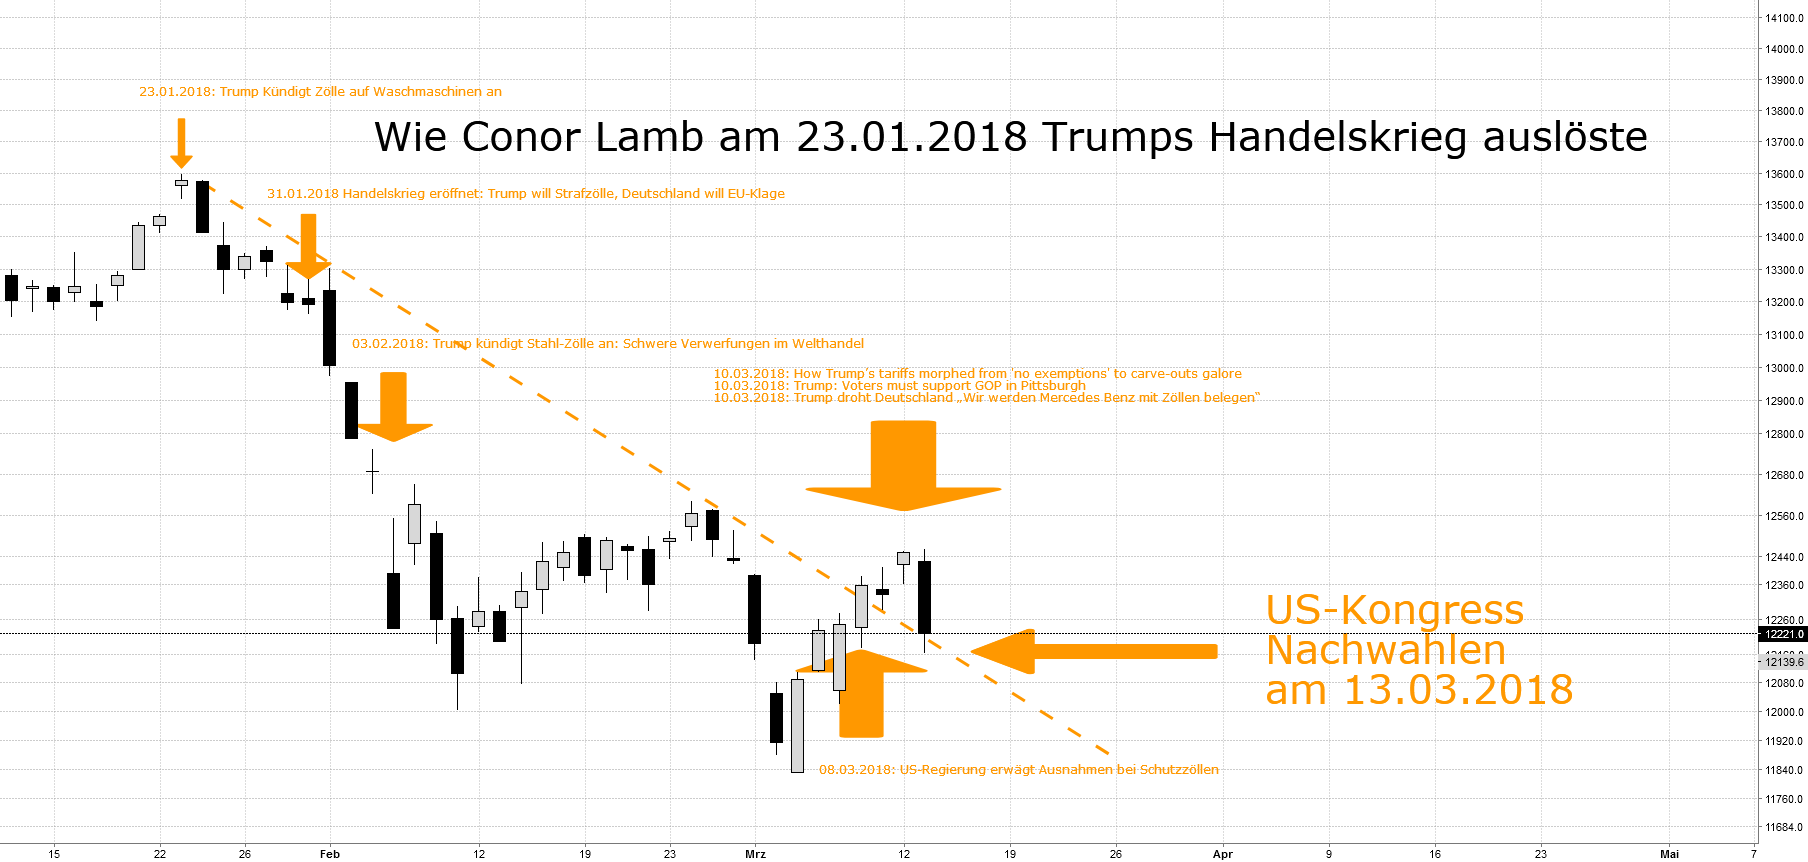 Wie Conor Lamb Trumps Trade War auslöste